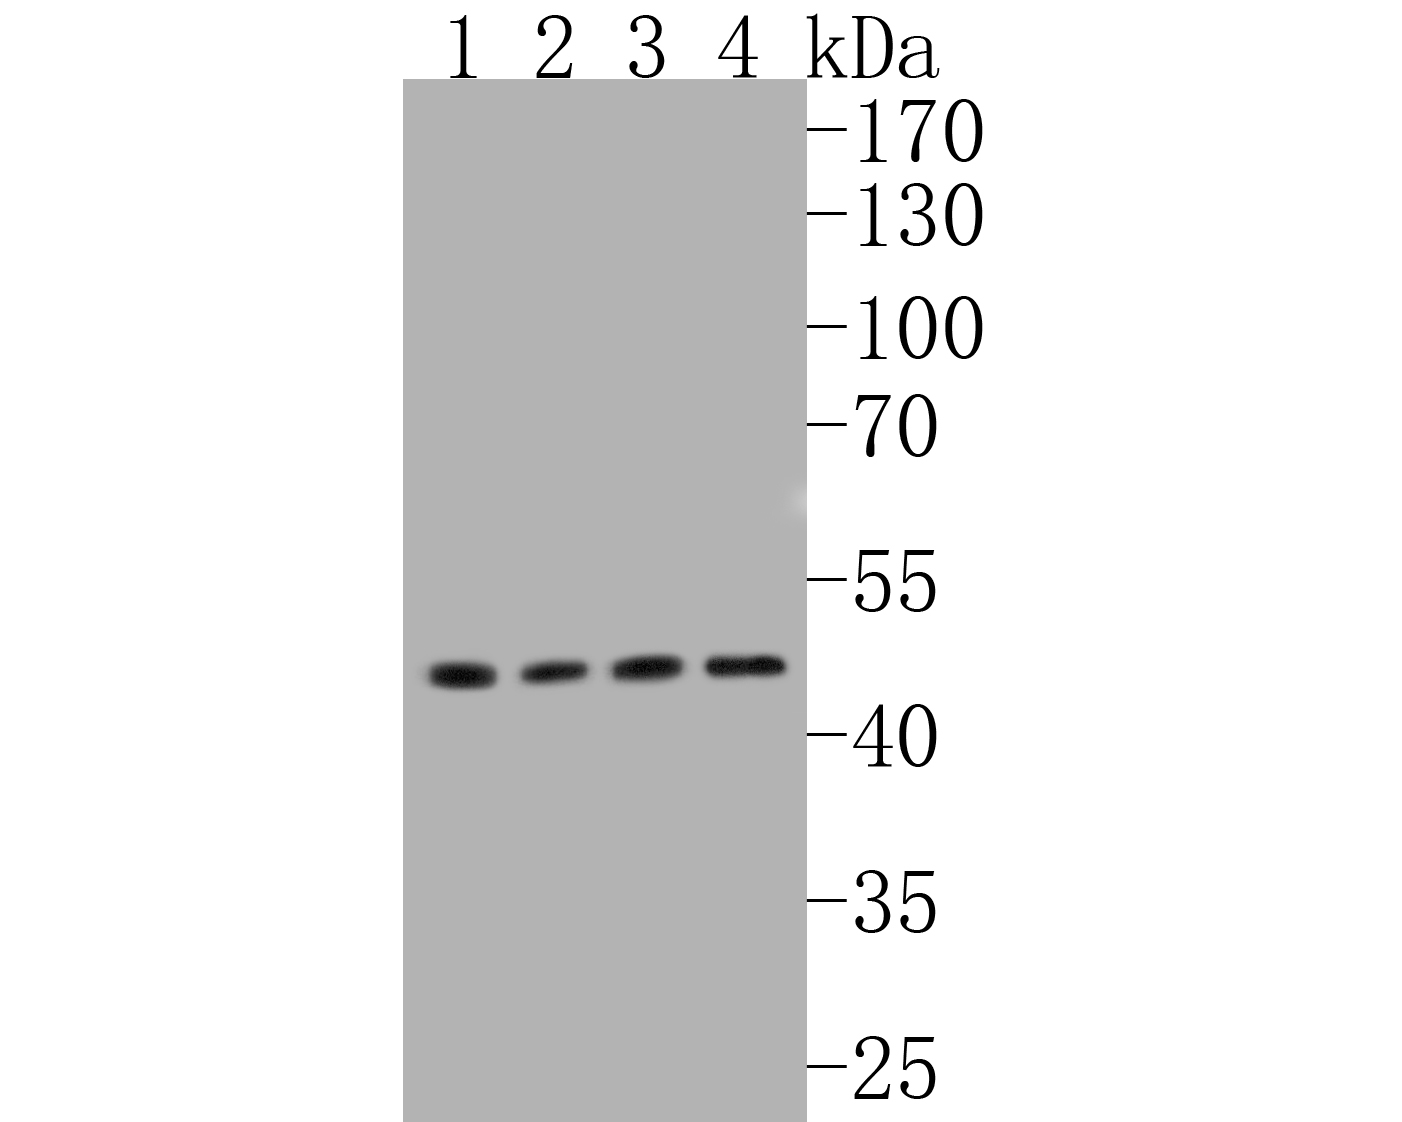 Western blot analysis of Glucose Transporter GLUT1 on different lysates. Proteins were transferred to a PVDF membrane and blocked with 5% BSA in PBS for 1 hour at room temperature. The primary antibody (ET1601-10, 1/500) was used in 5% BSA at room temperature for 2 hours. Goat Anti-Rabbit IgG - HRP Secondary Antibody (HA1001) at 1:5,000 dilution was used for 1 hour at room temperature.<br /> Positive control: <br /> Lane 1: Hela cell lysate<br /> Lane 2: Sk-Br-3 cell lysate<br /> Lane 3: NIH/3T3 cell lysate<br /> Lane 4: HepG2 cell lysate